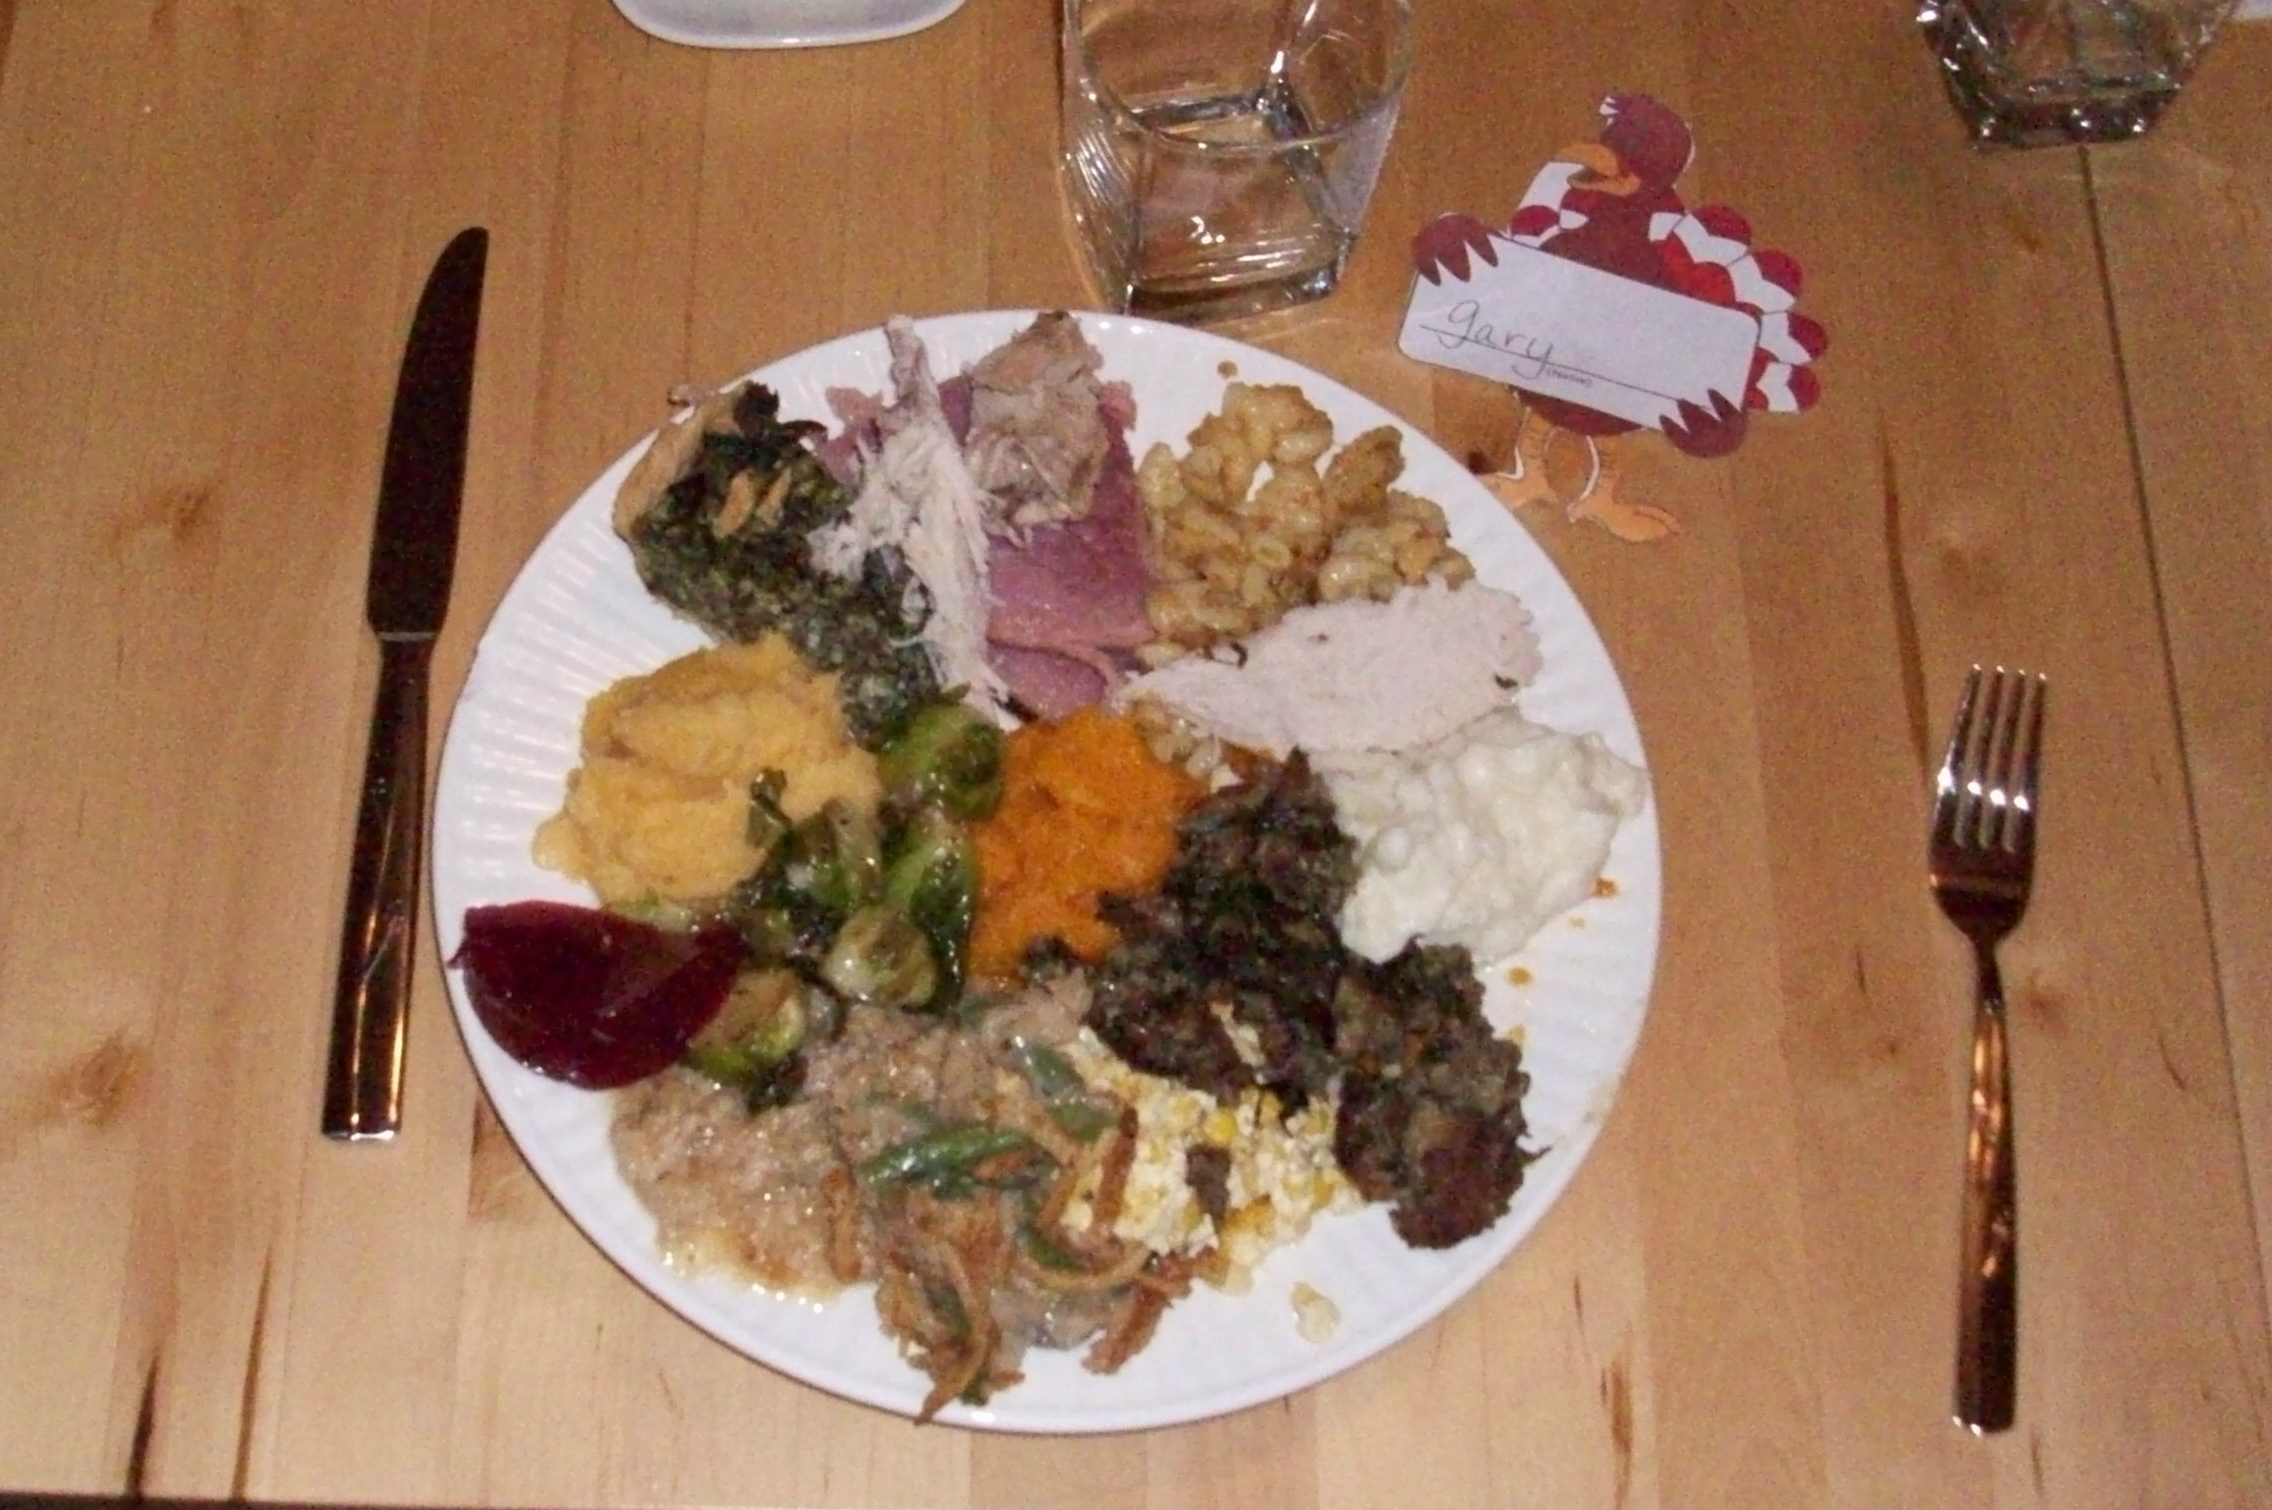 Oak Bluffs, Martha's Vinyard :: Starting at twelve o'clock with Ham, Mac n Cheese, Turkey, Mashed Potatoes Sweet Potatoes (under yje mashed), Sausage and Sage Stuffing, Corn Pudding (has a Spanish name), Green Bean casserole, Escalloped Oysters (Papa called it Oyster stuffing), Brussel Sprouts, Cranberry Sauce, Turnips, Spinach Pie, another piece of Turkey and Butternut Squash in the center.   I attempted to have a little of ev erything on my plate, however I failed, missing is Cornbread Stuffing Balls (nana calls the Svetti Balls) and Gravy.  It was all awesome.